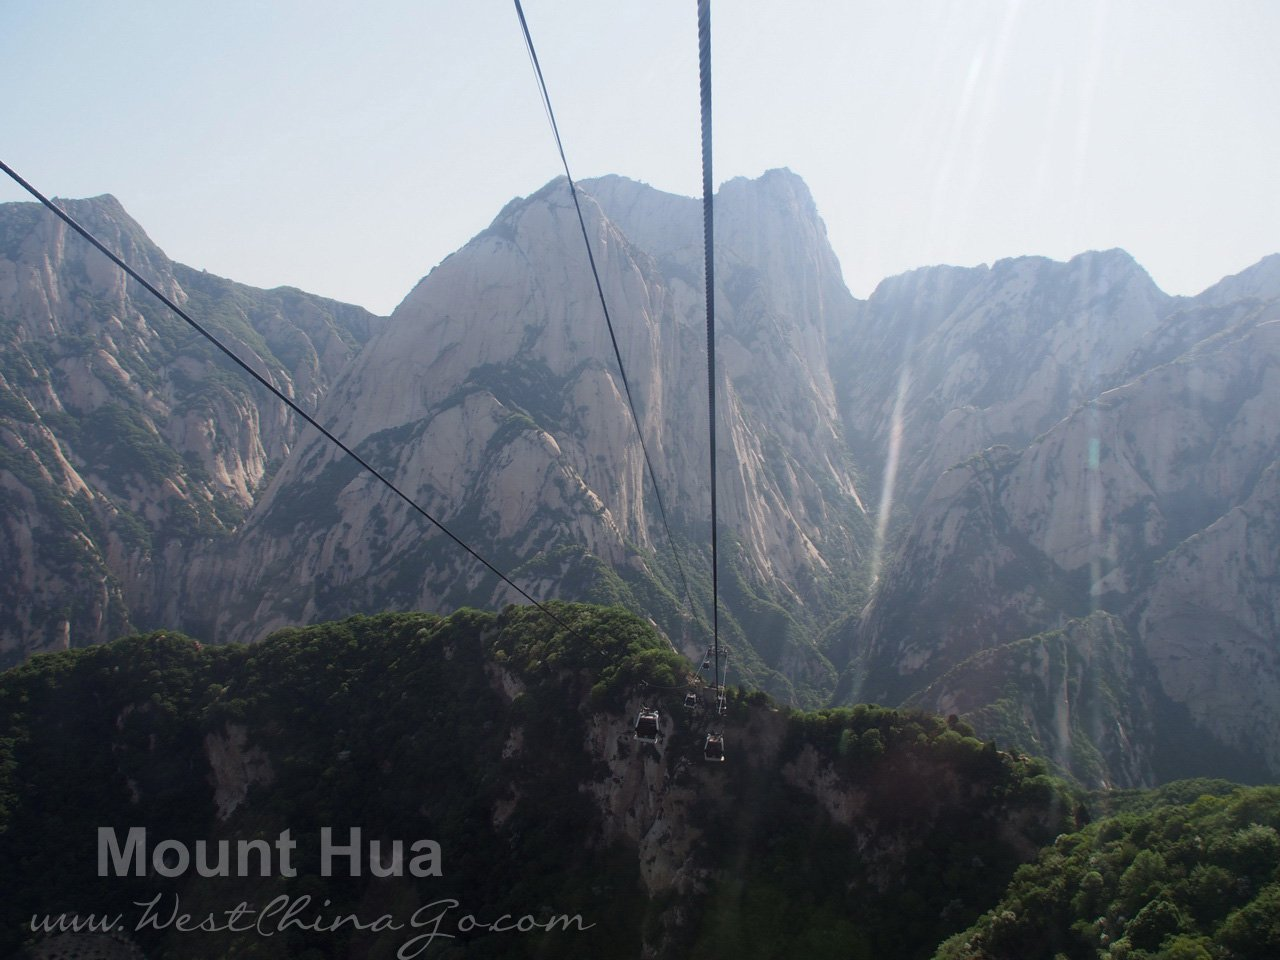 How to Get to Mount Hua from XiAn